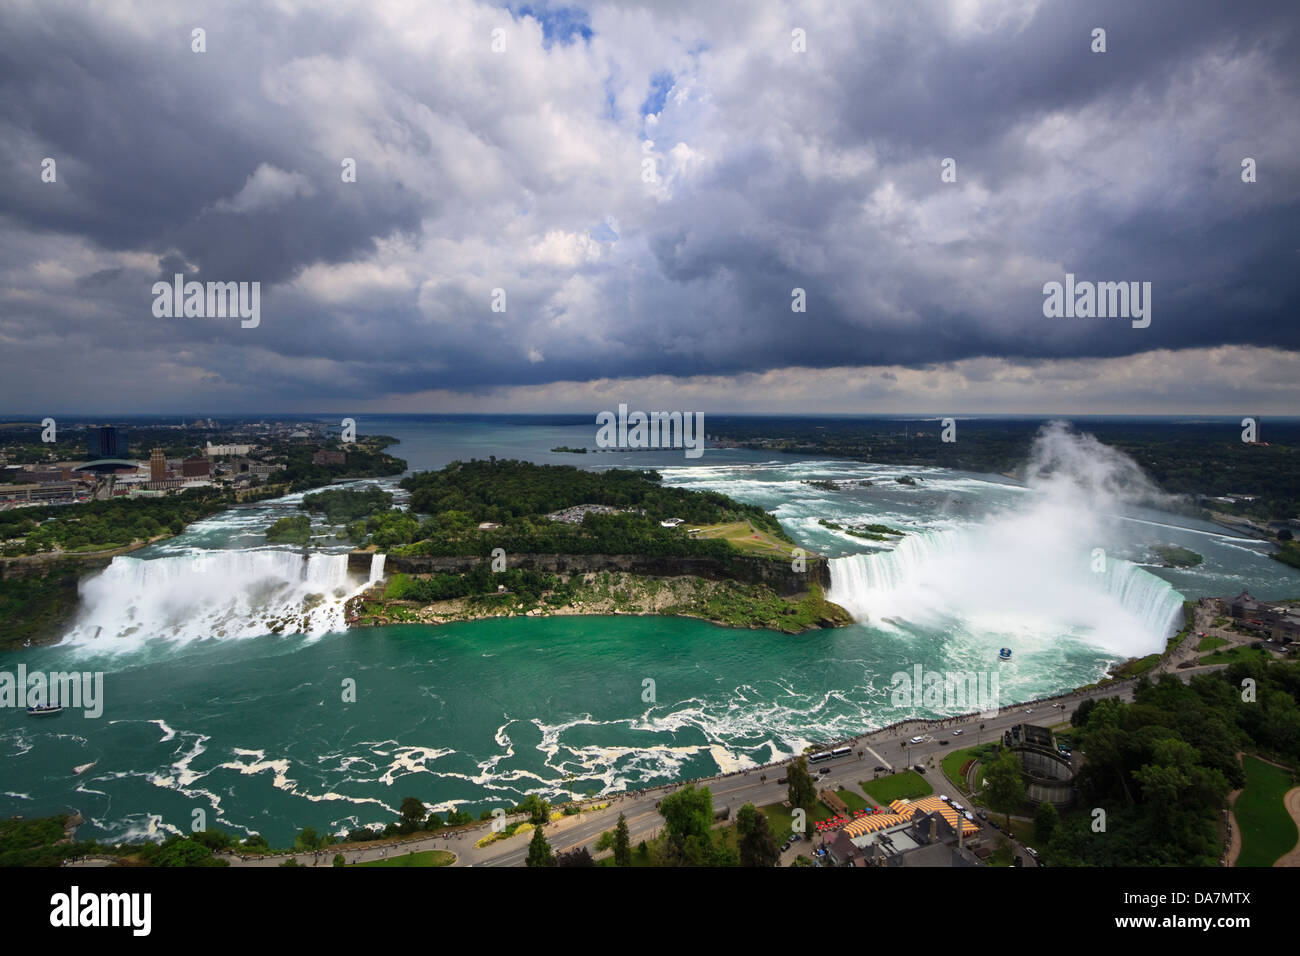 Aerial view of Niagara Falls from the Canadian side - Stock Image